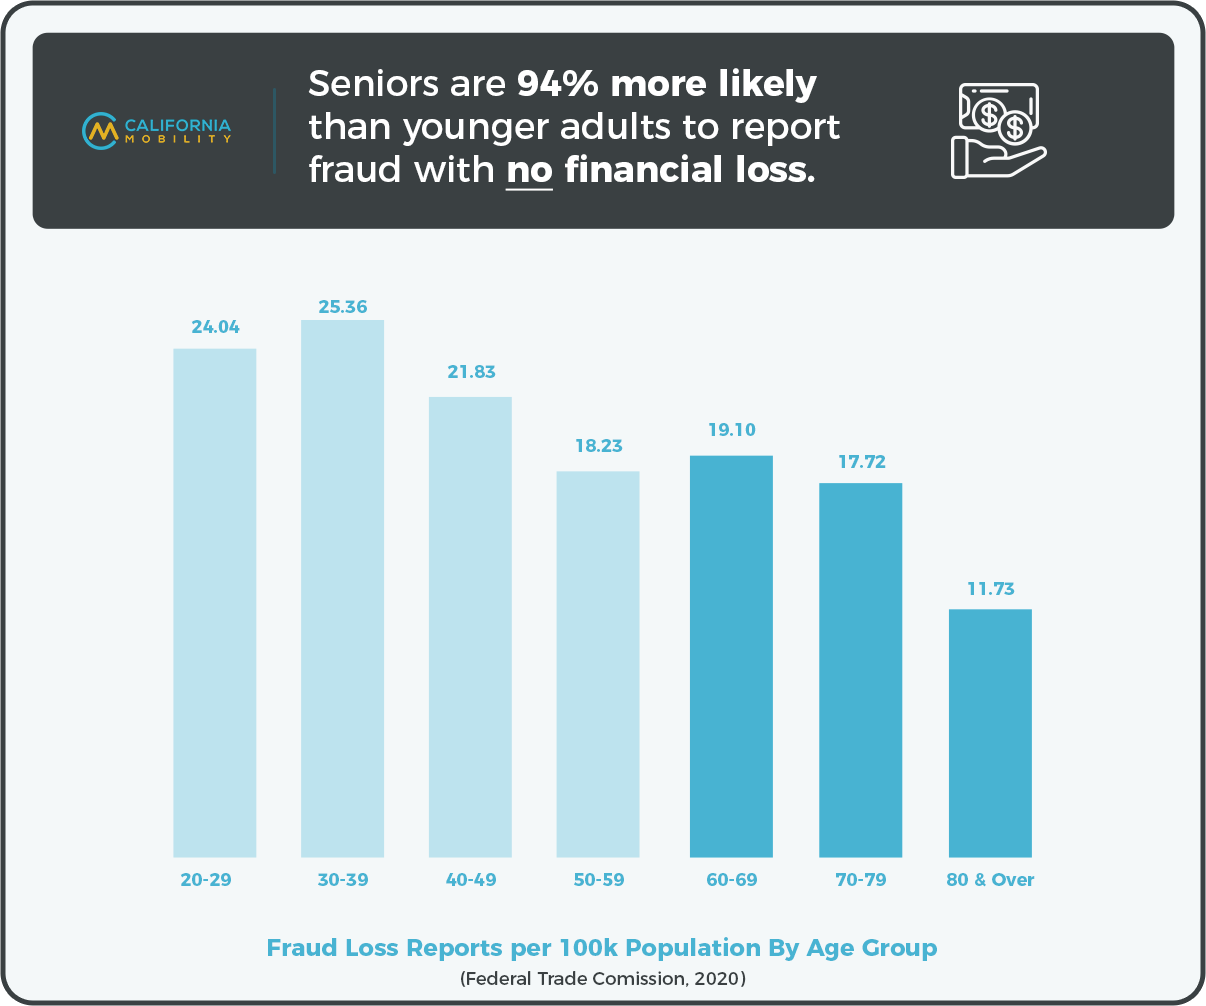 seniors 94% more likely to report fraud